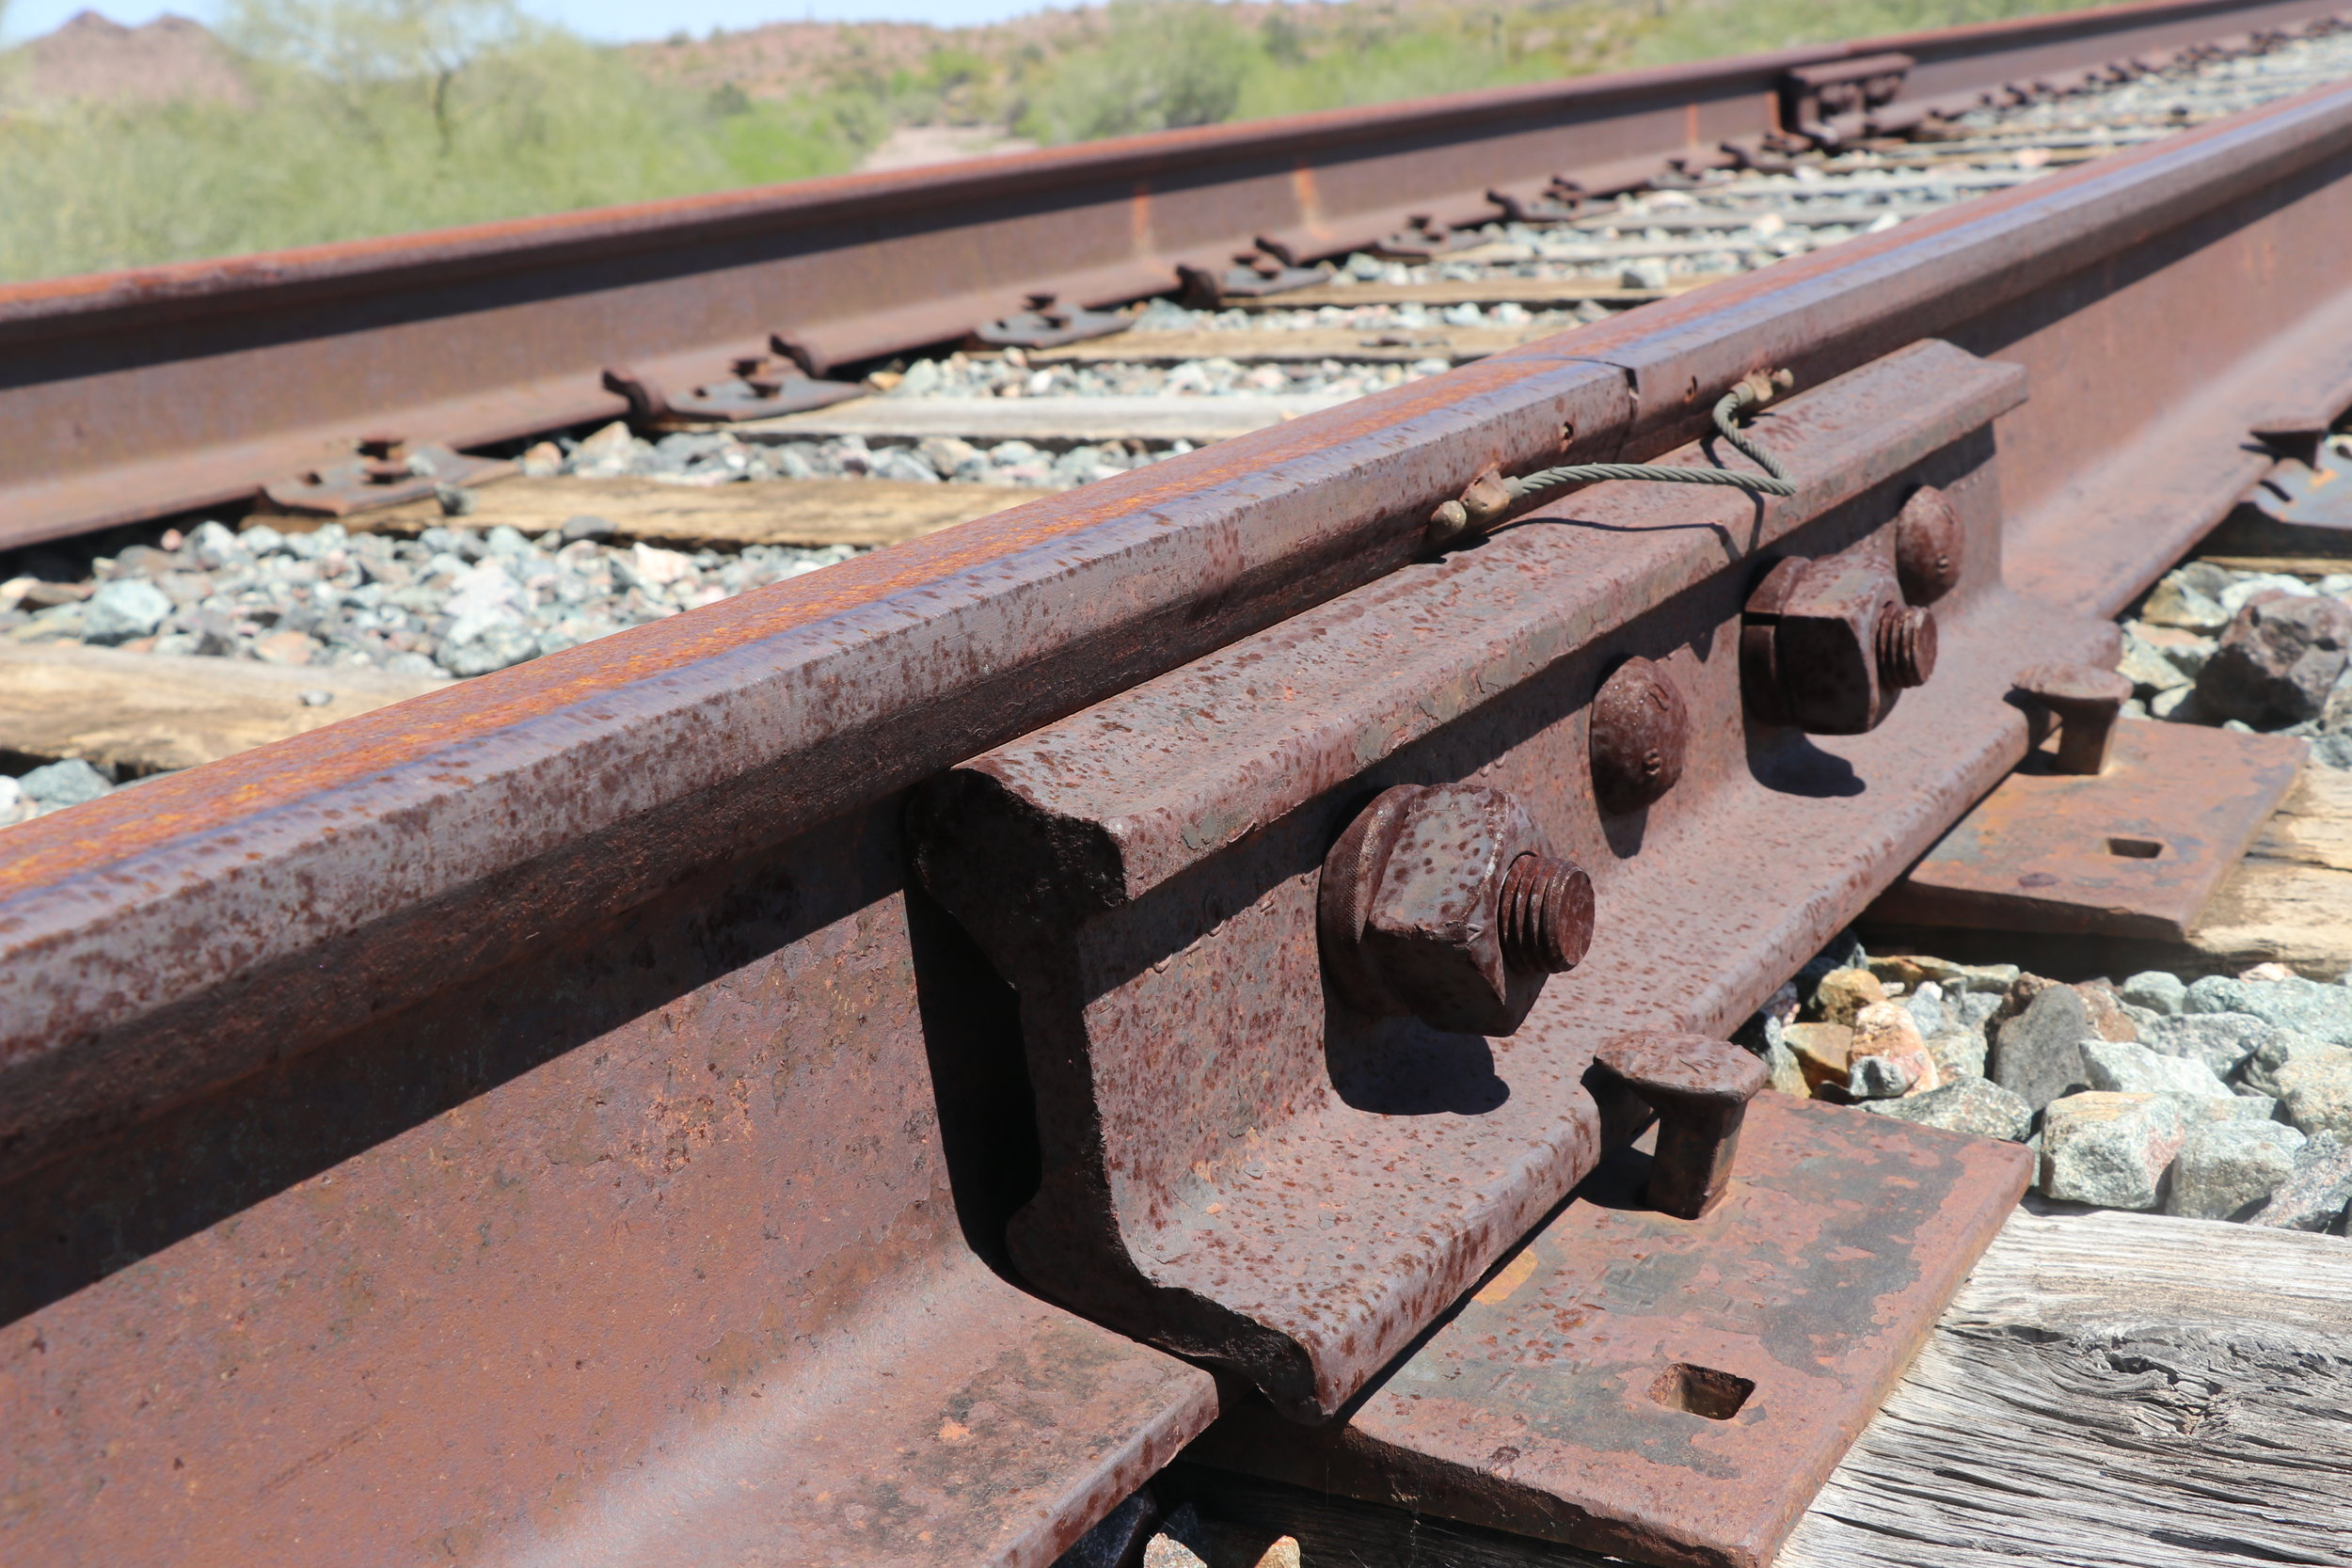 This equipment would have been tampered with to cause the derailment.